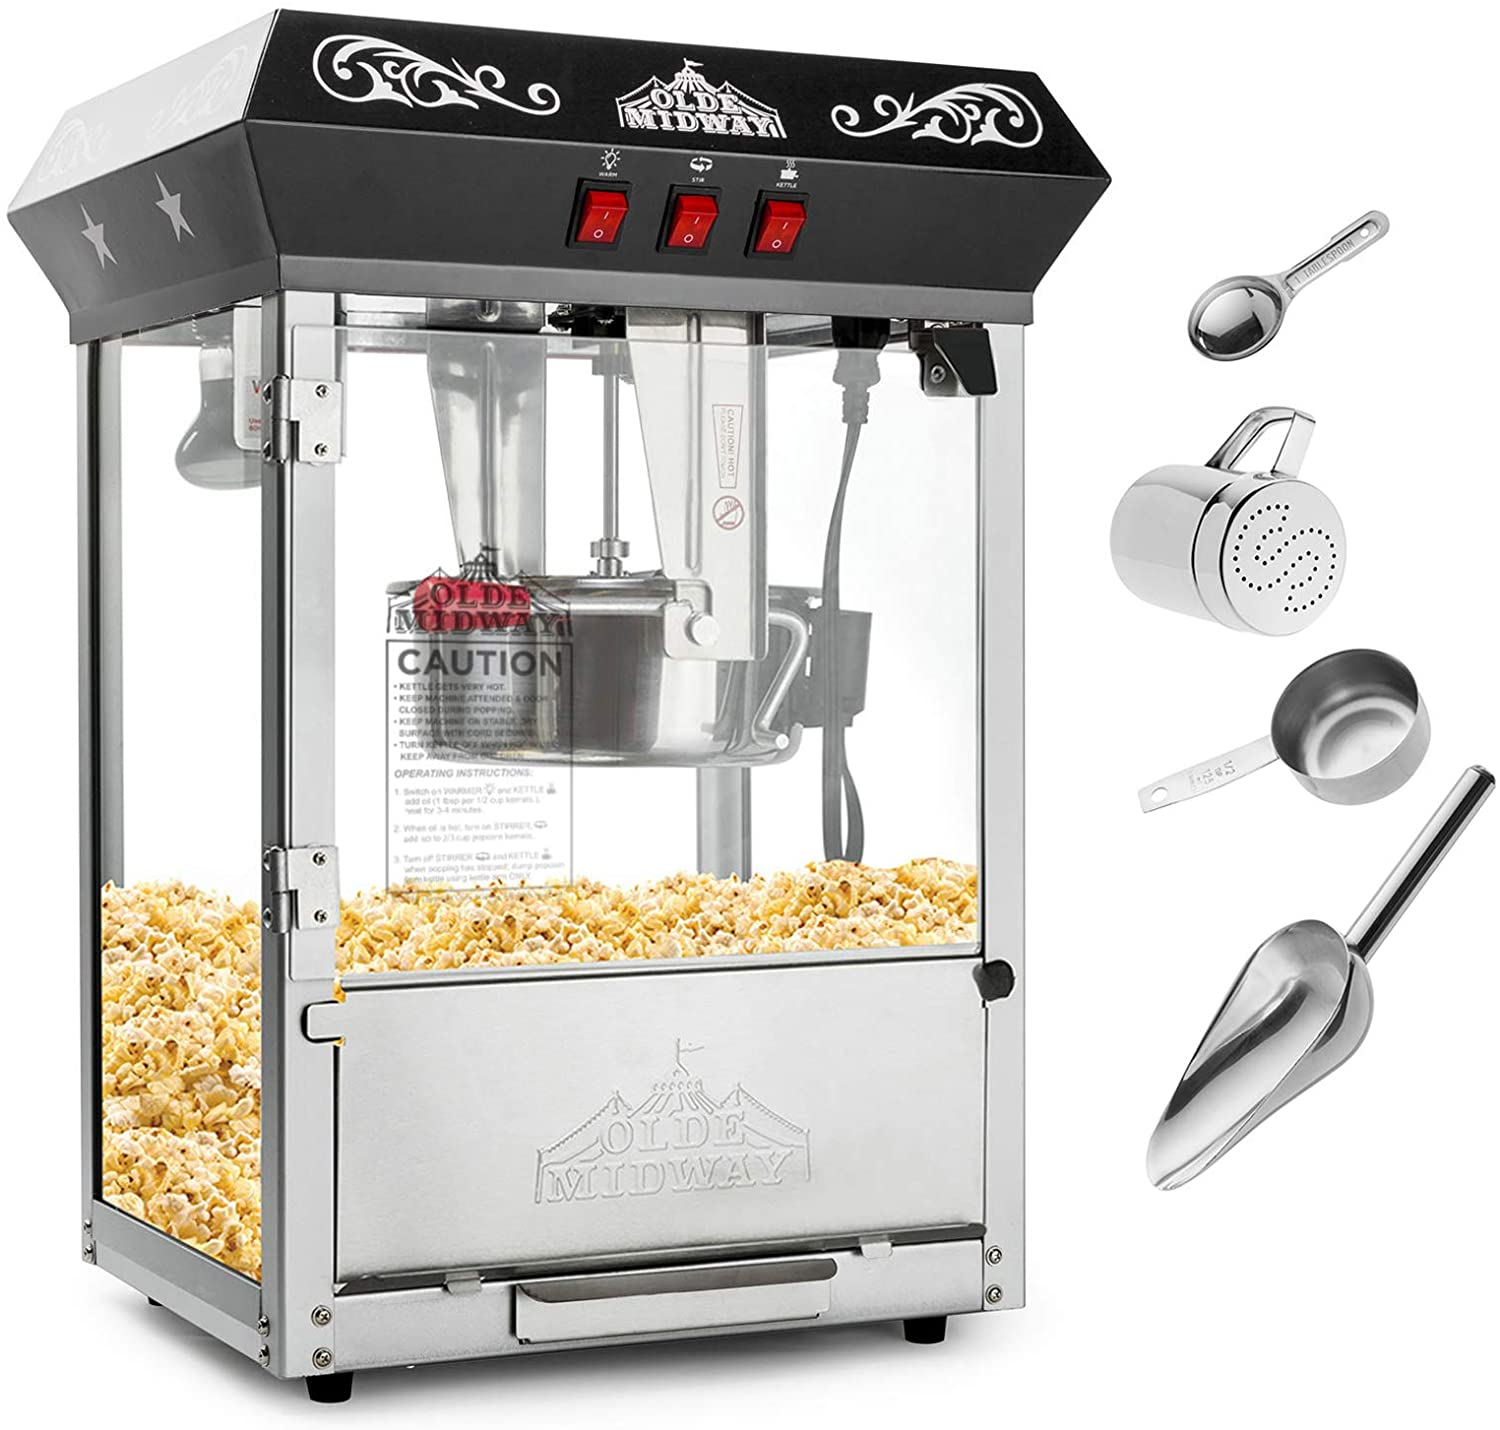 4. OLDE Midway Bar Style Popcorn Maker| Home Popcorn Machines